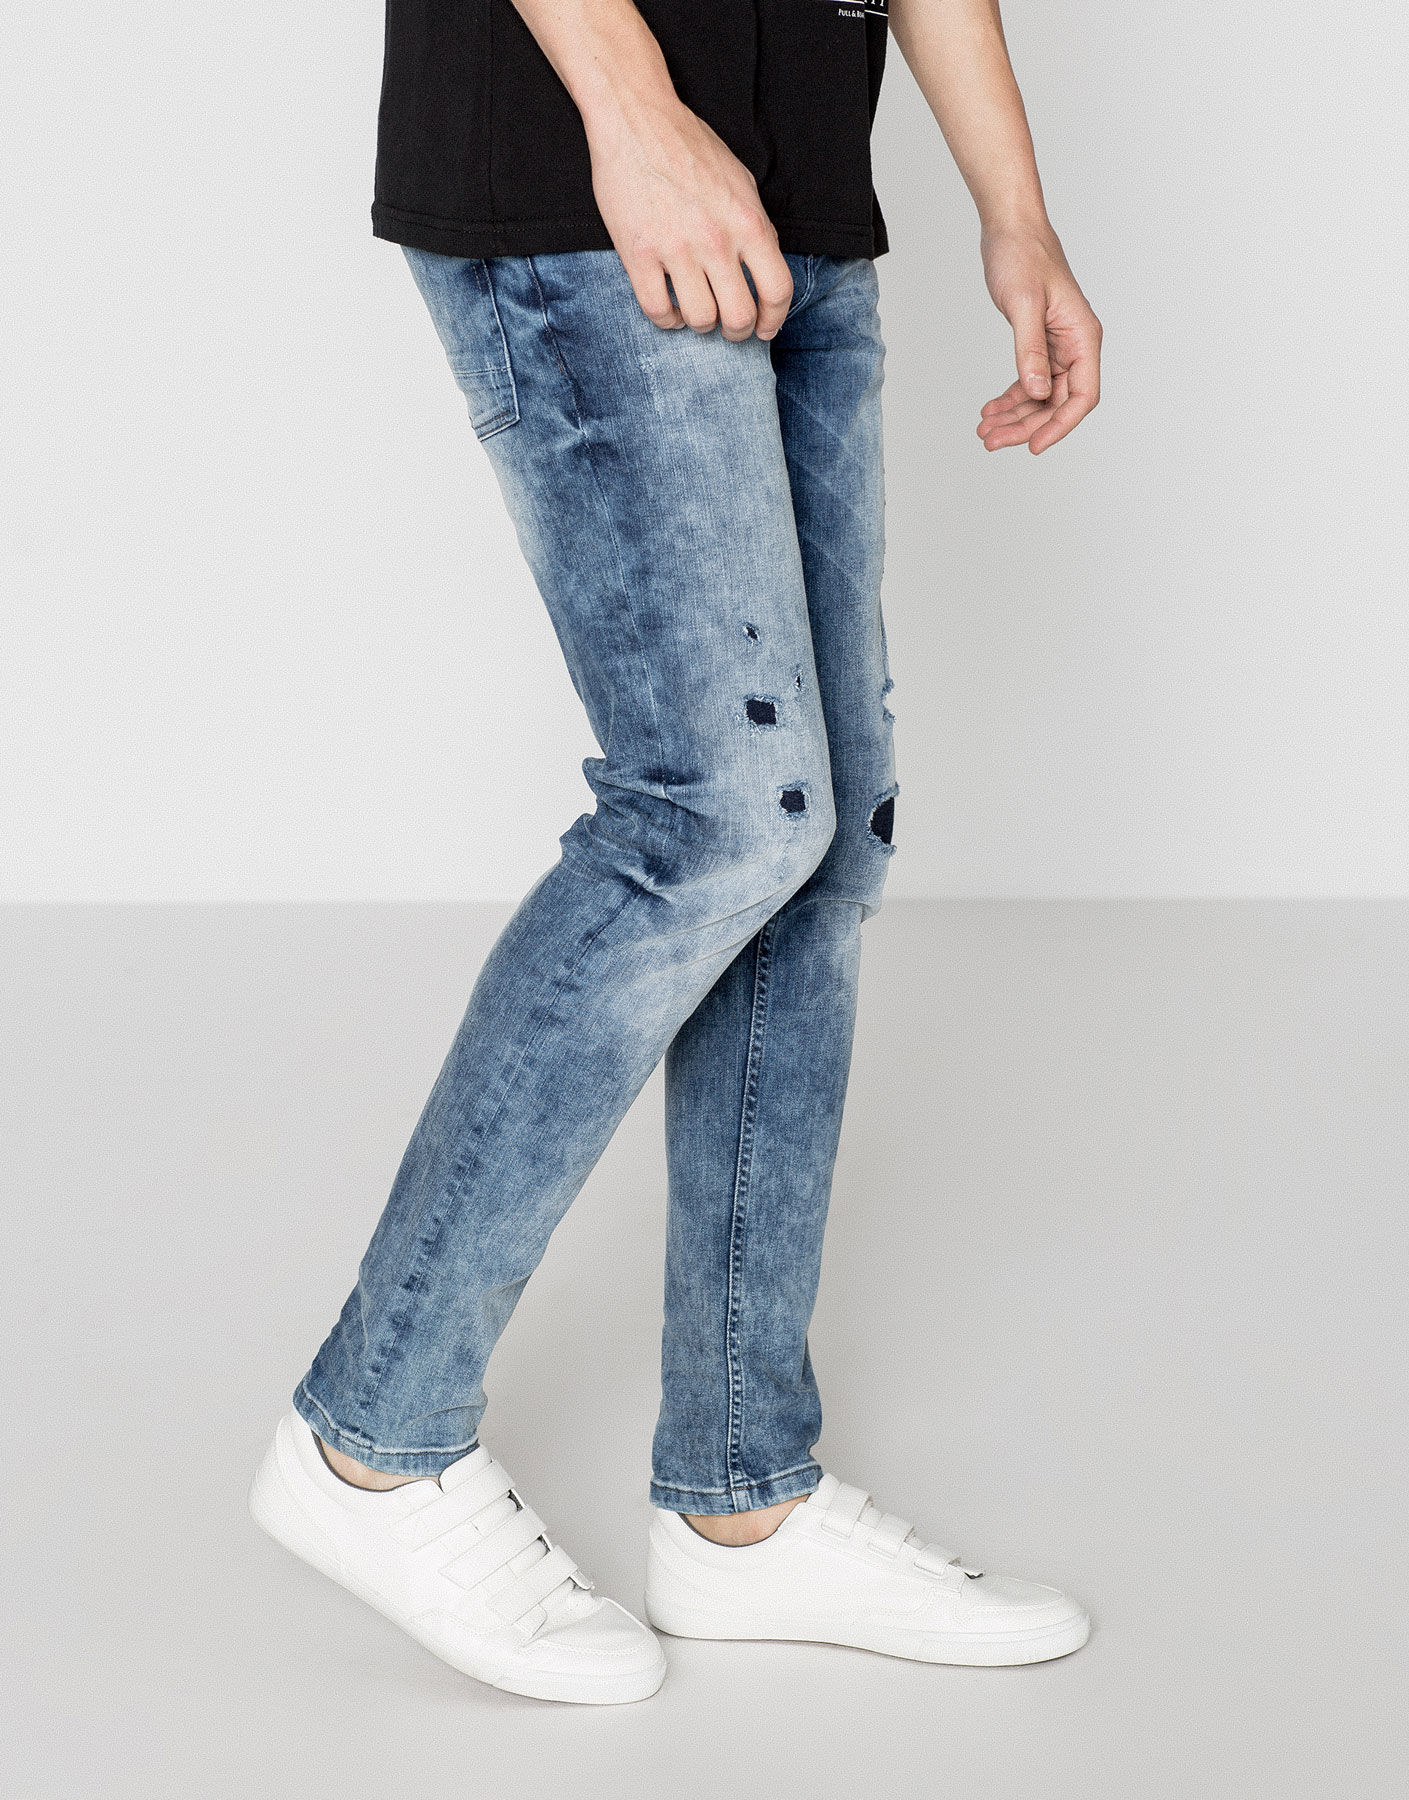 Jeans skinny fit big rotos y parches